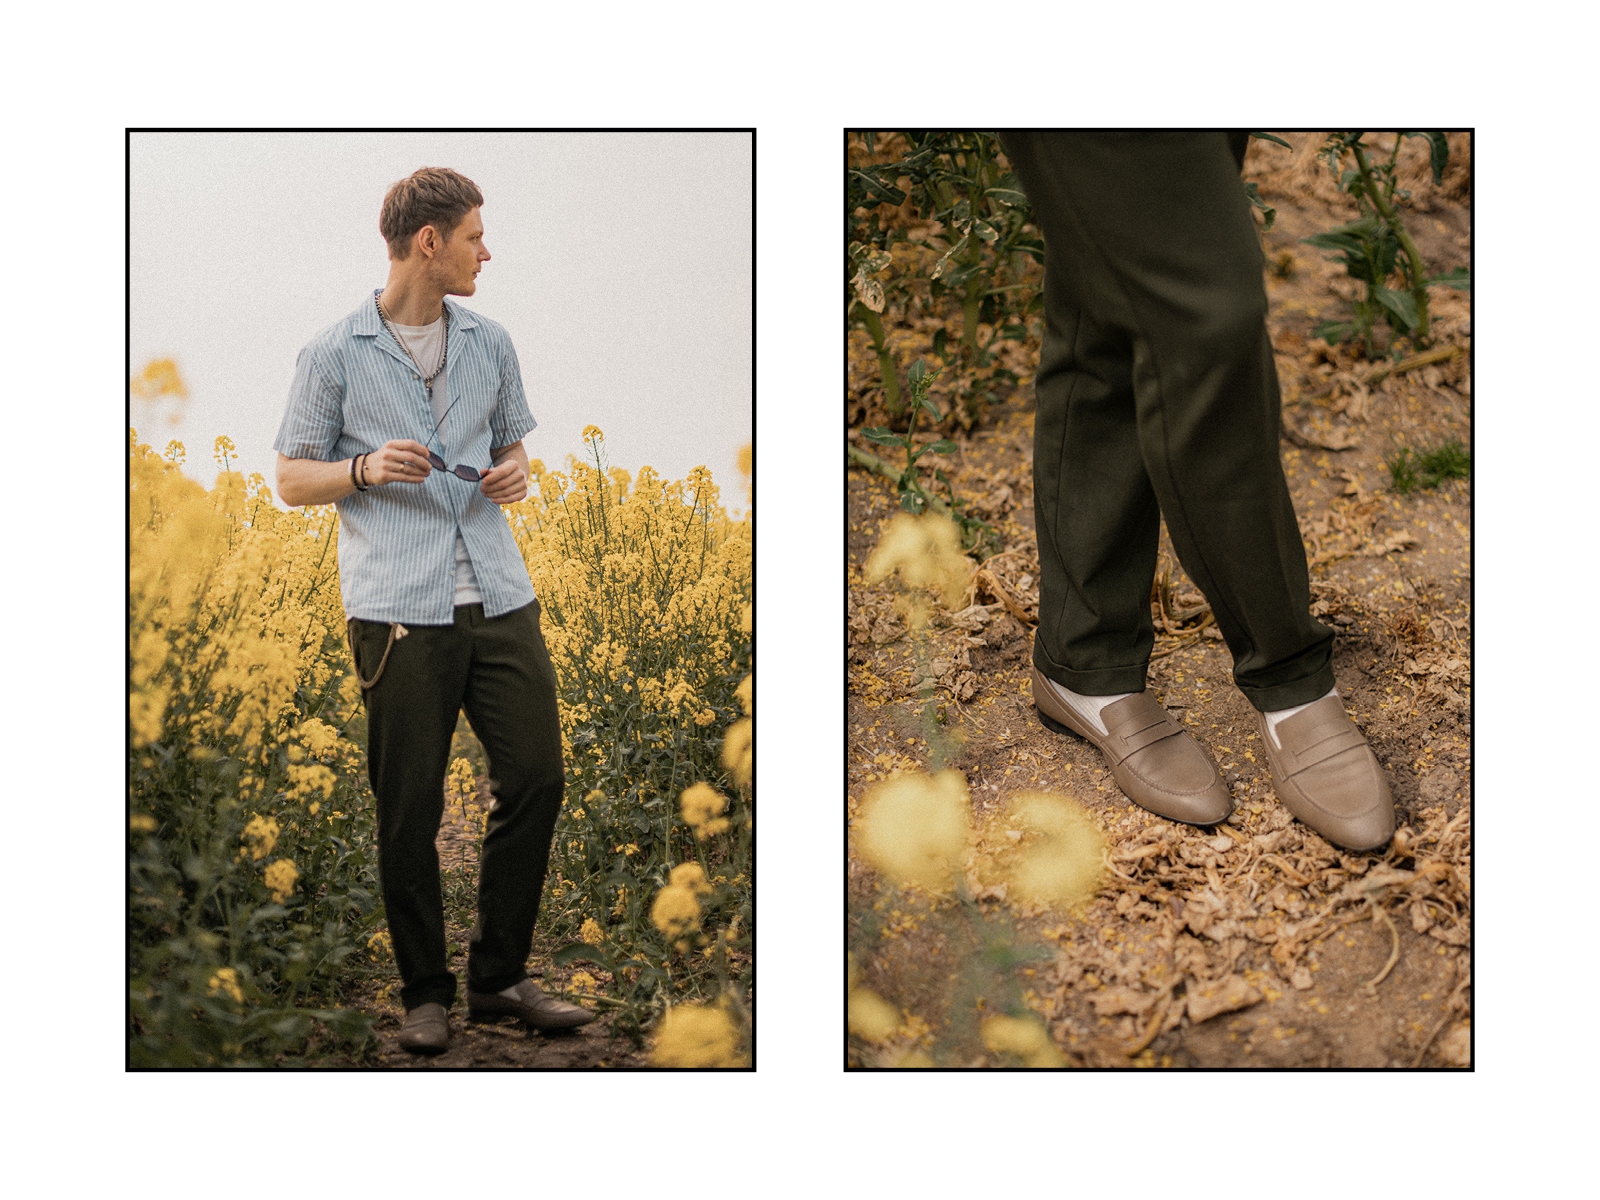 mens fashion spring editorial in yellow field with hermes loafers